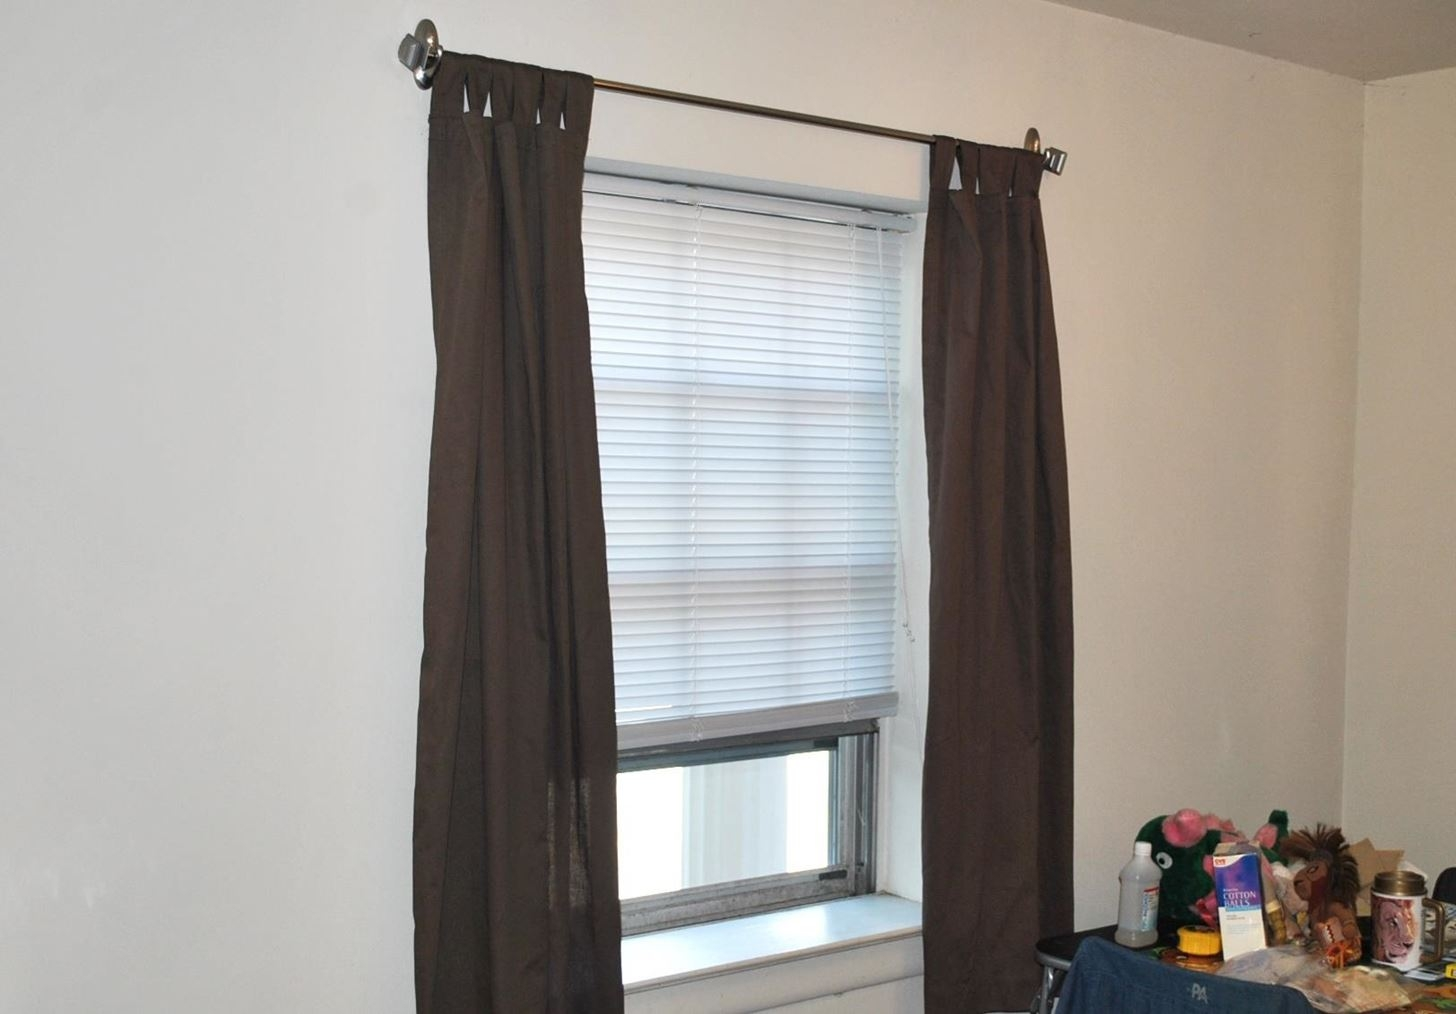 How To Hang Curtains Without Making Holes In The Wall Interior Regarding Hanging Curtains (View 17 of 25)